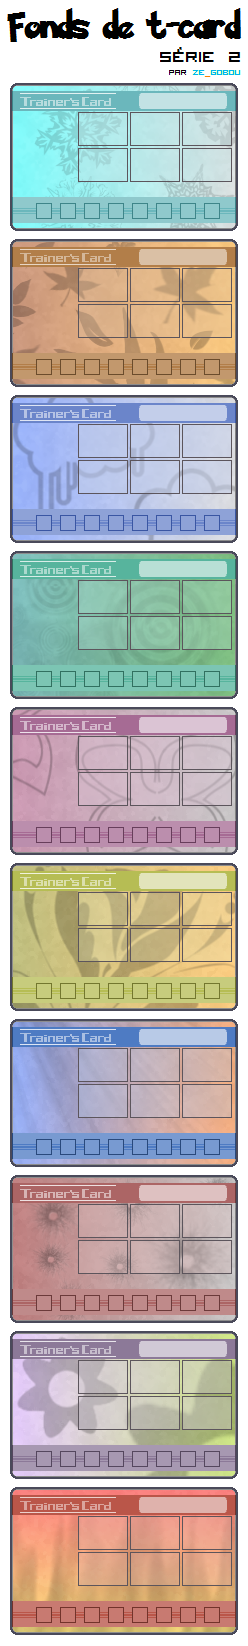 Trainer's card backgrounds 2 by pwassonne